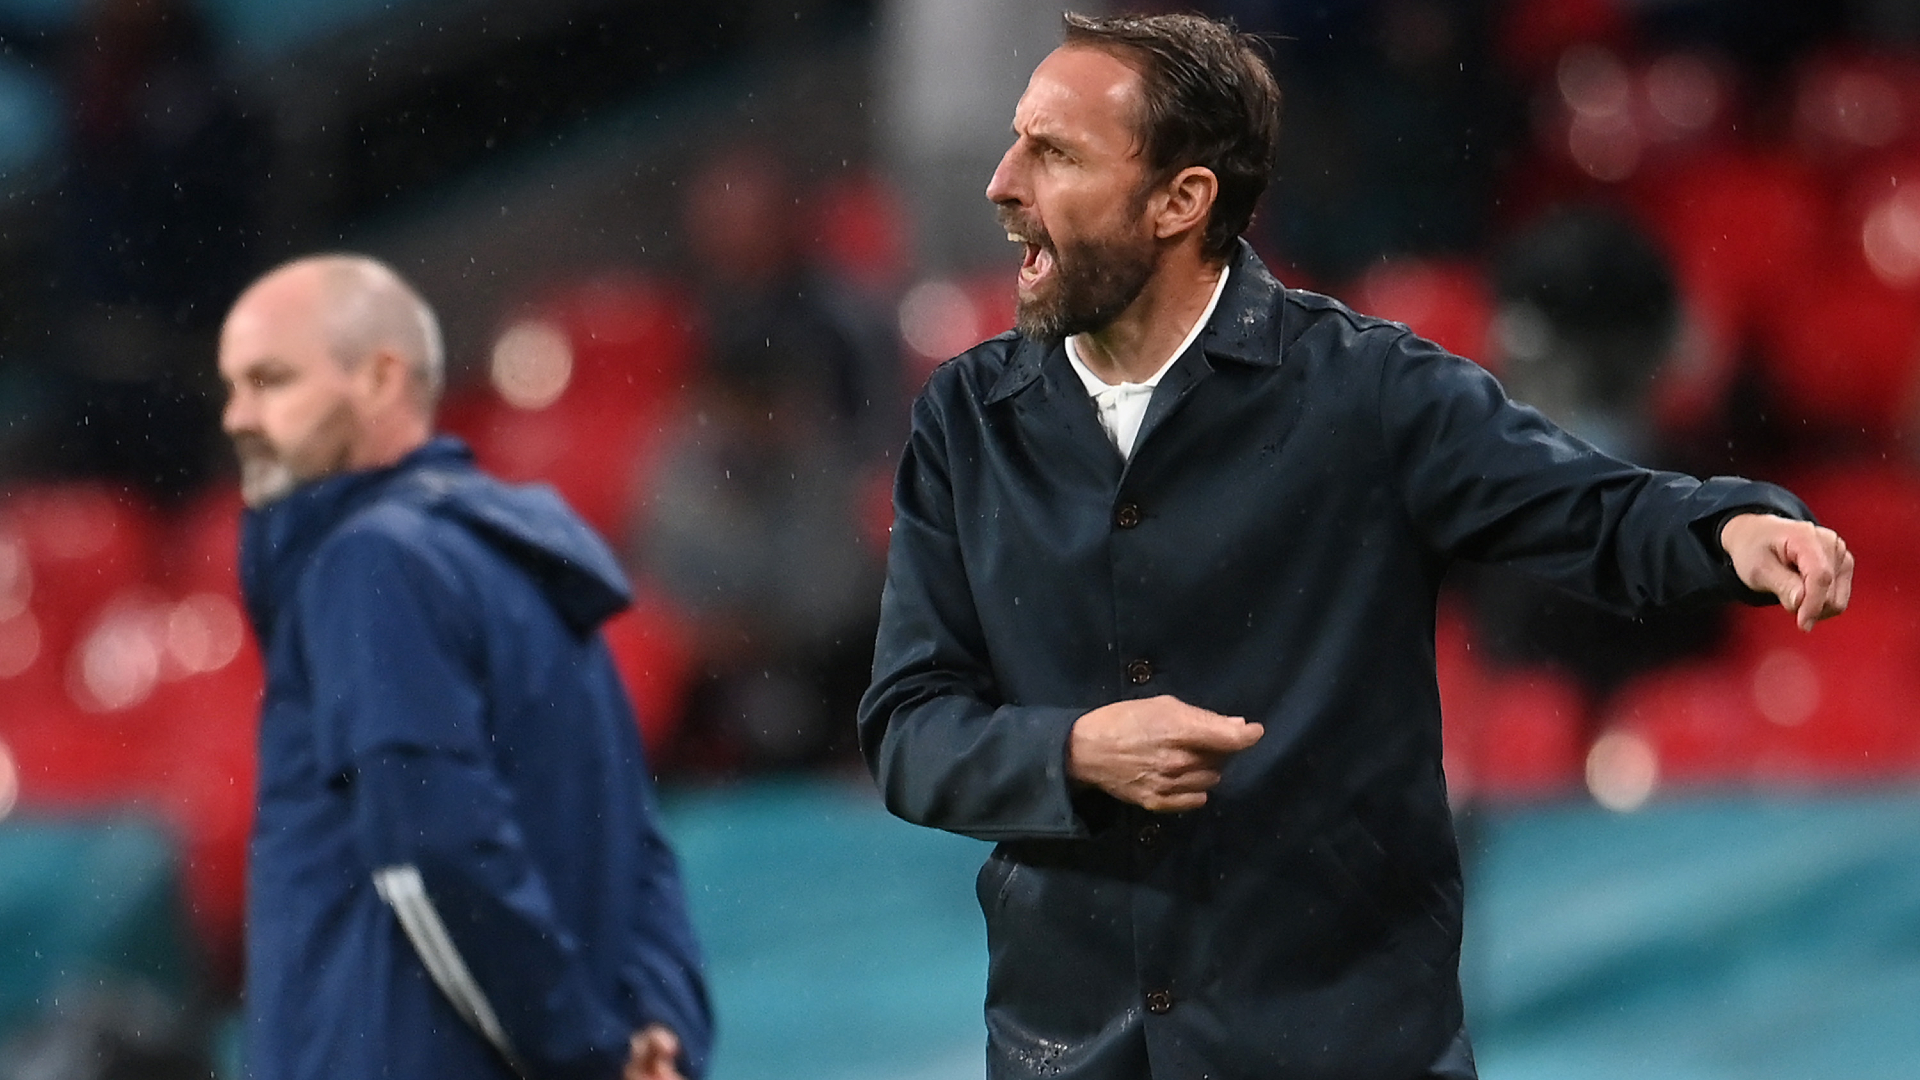 Euro 2020: England 0-0 Scotland full match reaction & quotes: Southgate  admits steep learning curve   Goal.com